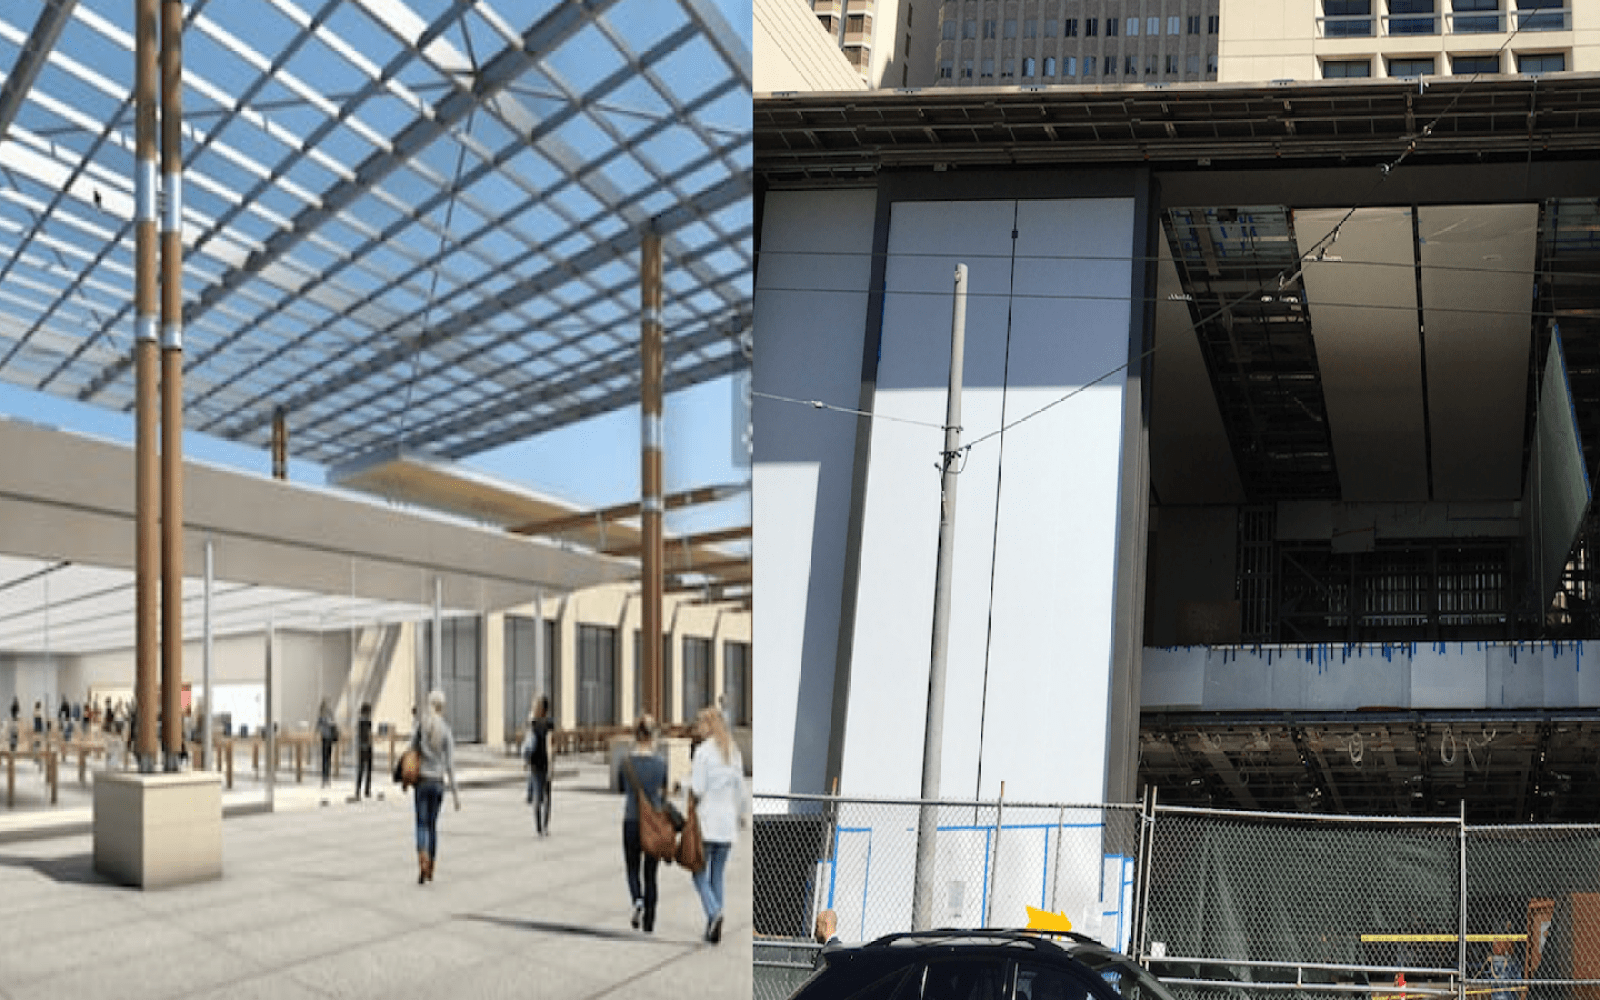 Mac Terrasse Du Port Apple Store In Marseille France Set To Open May 14 As